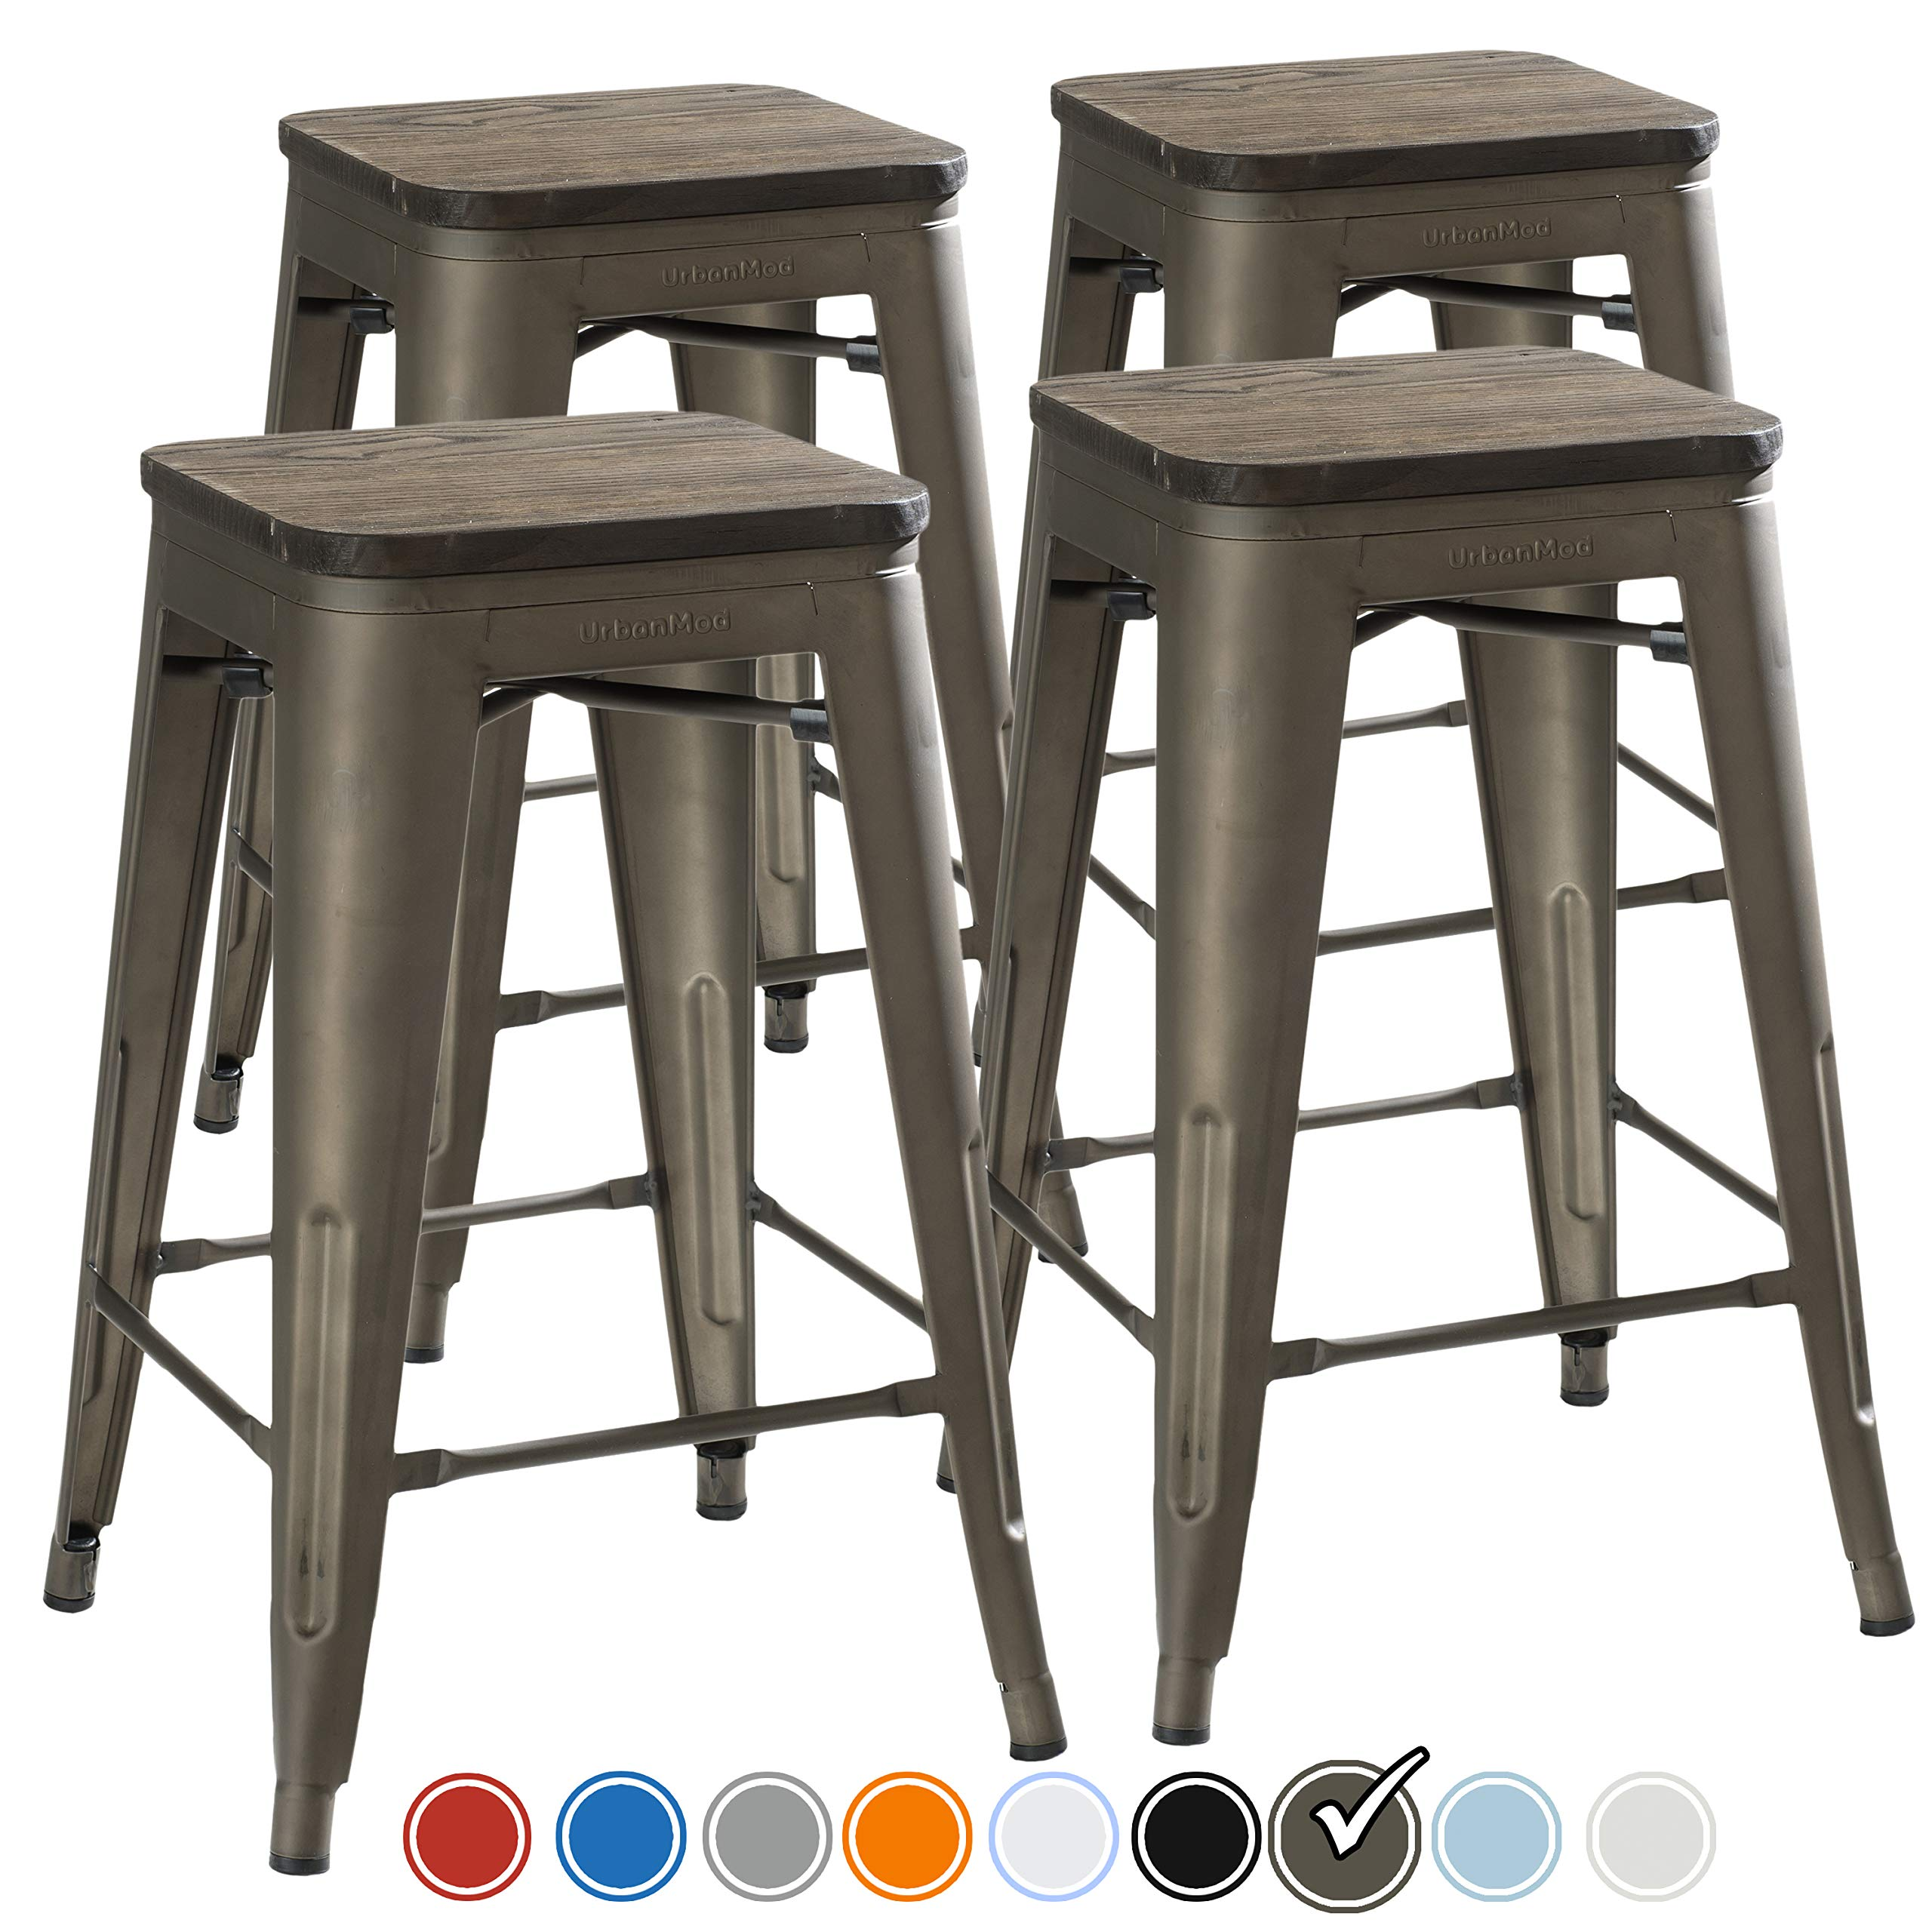 Urbanmod 24 Inch Bar Stools For Kitchen Counter Height Indoor